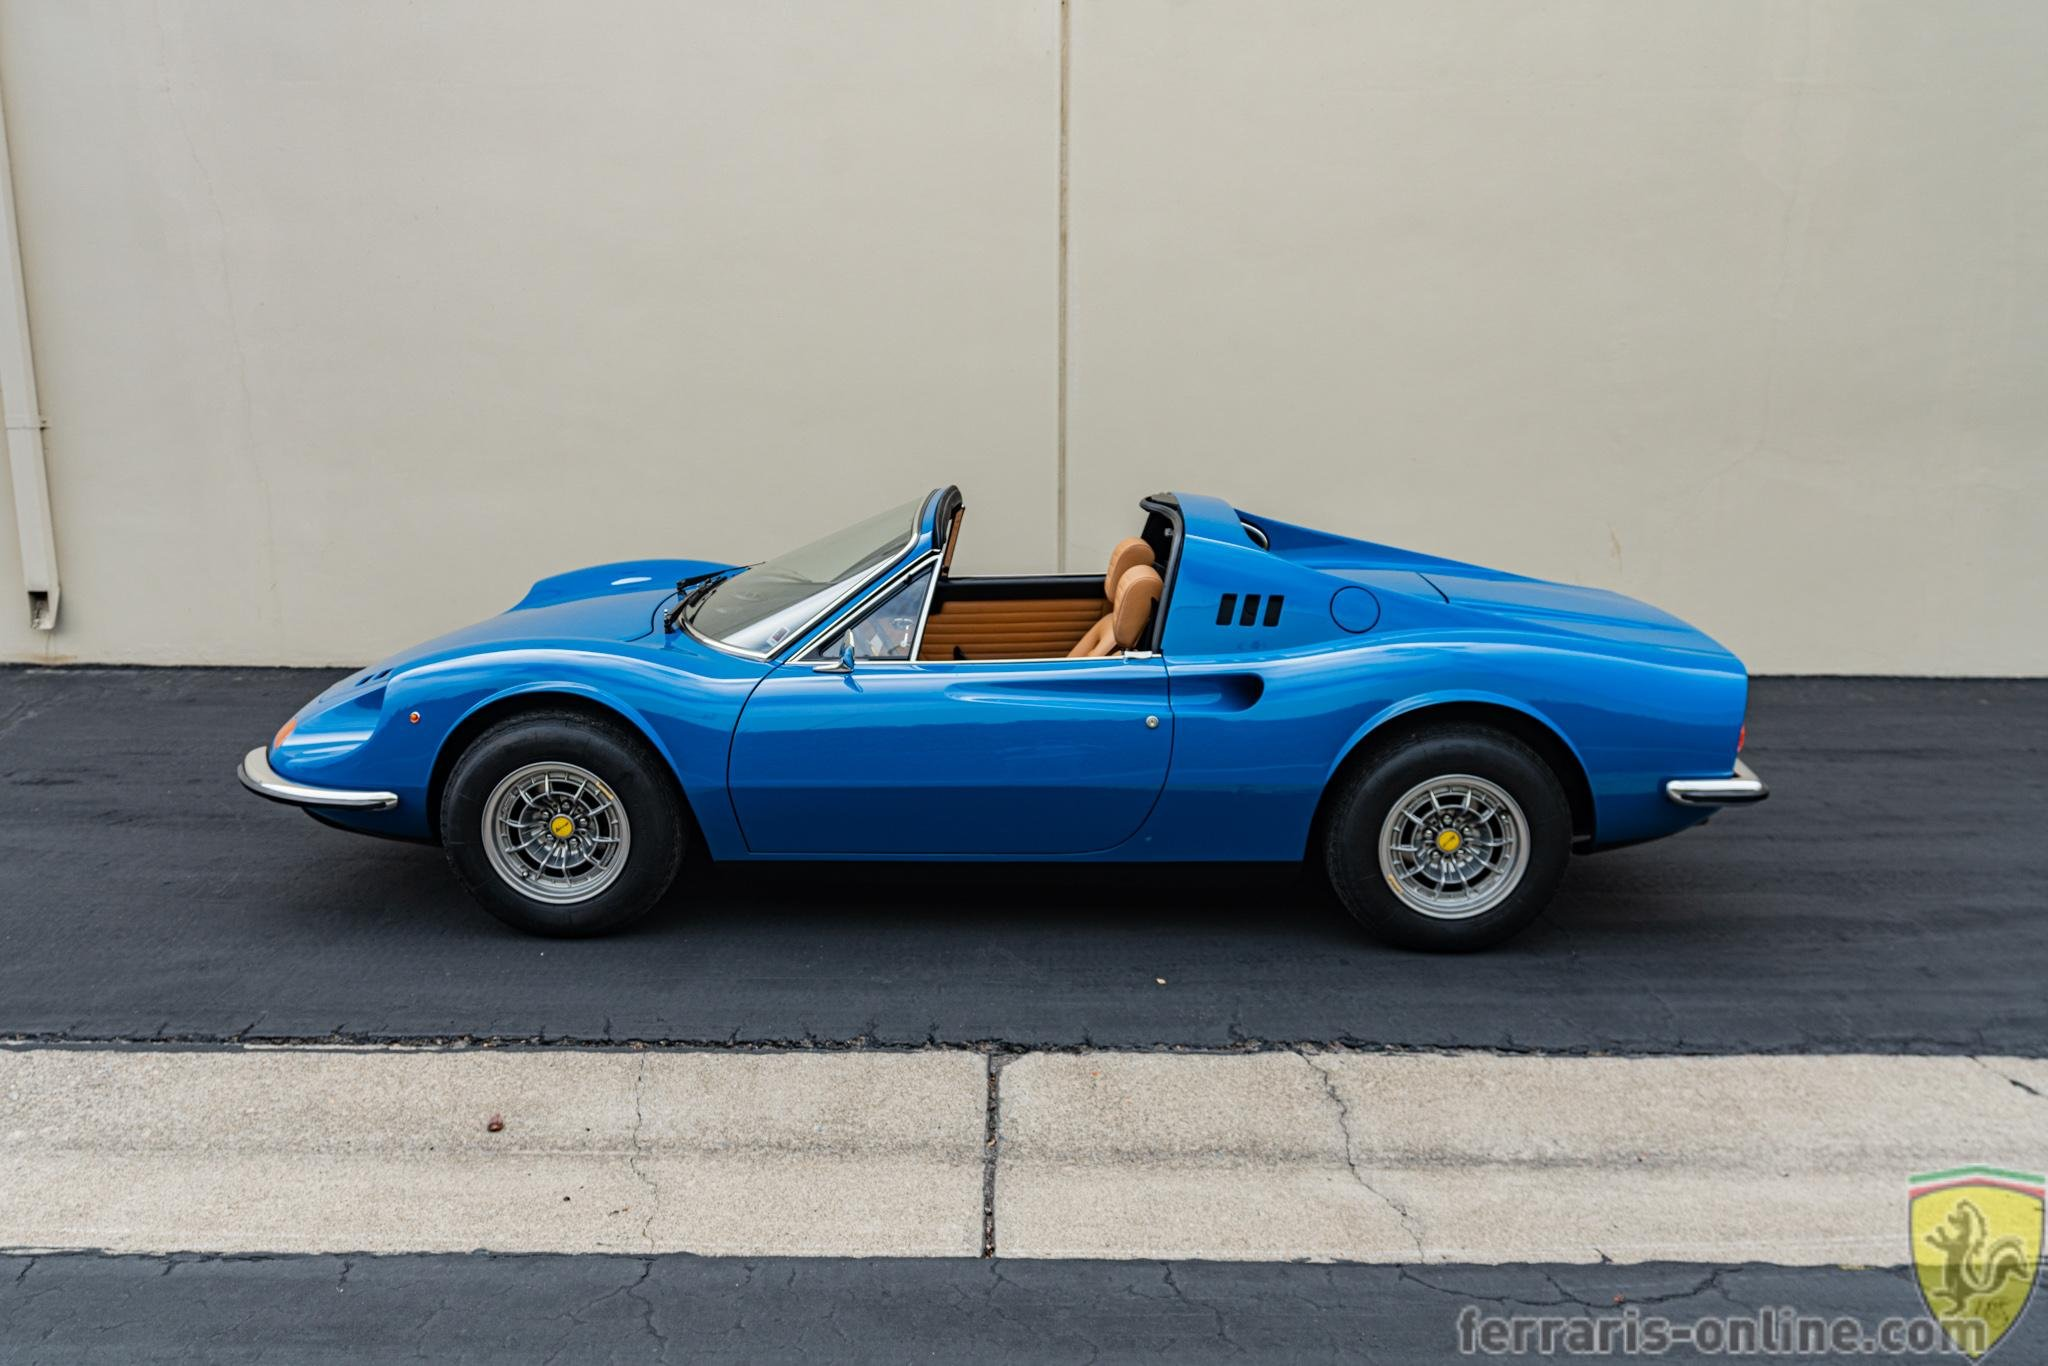 1974 Euro model Ferrari 246 GTS Dino #07574 chairs and flares